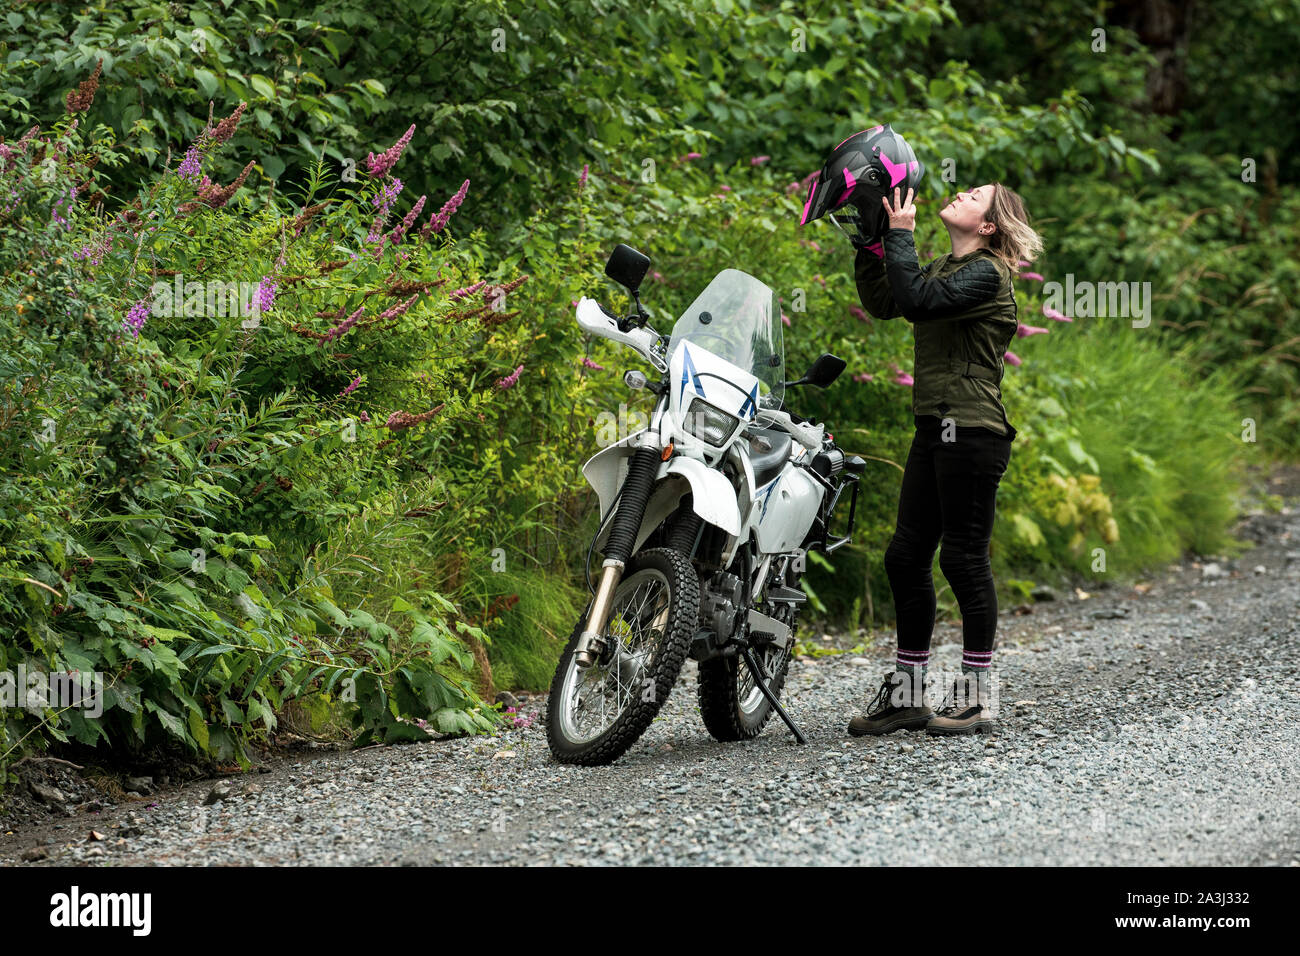 A women takes a break from motorcycle riding and takes off her helmet. Stock Photo